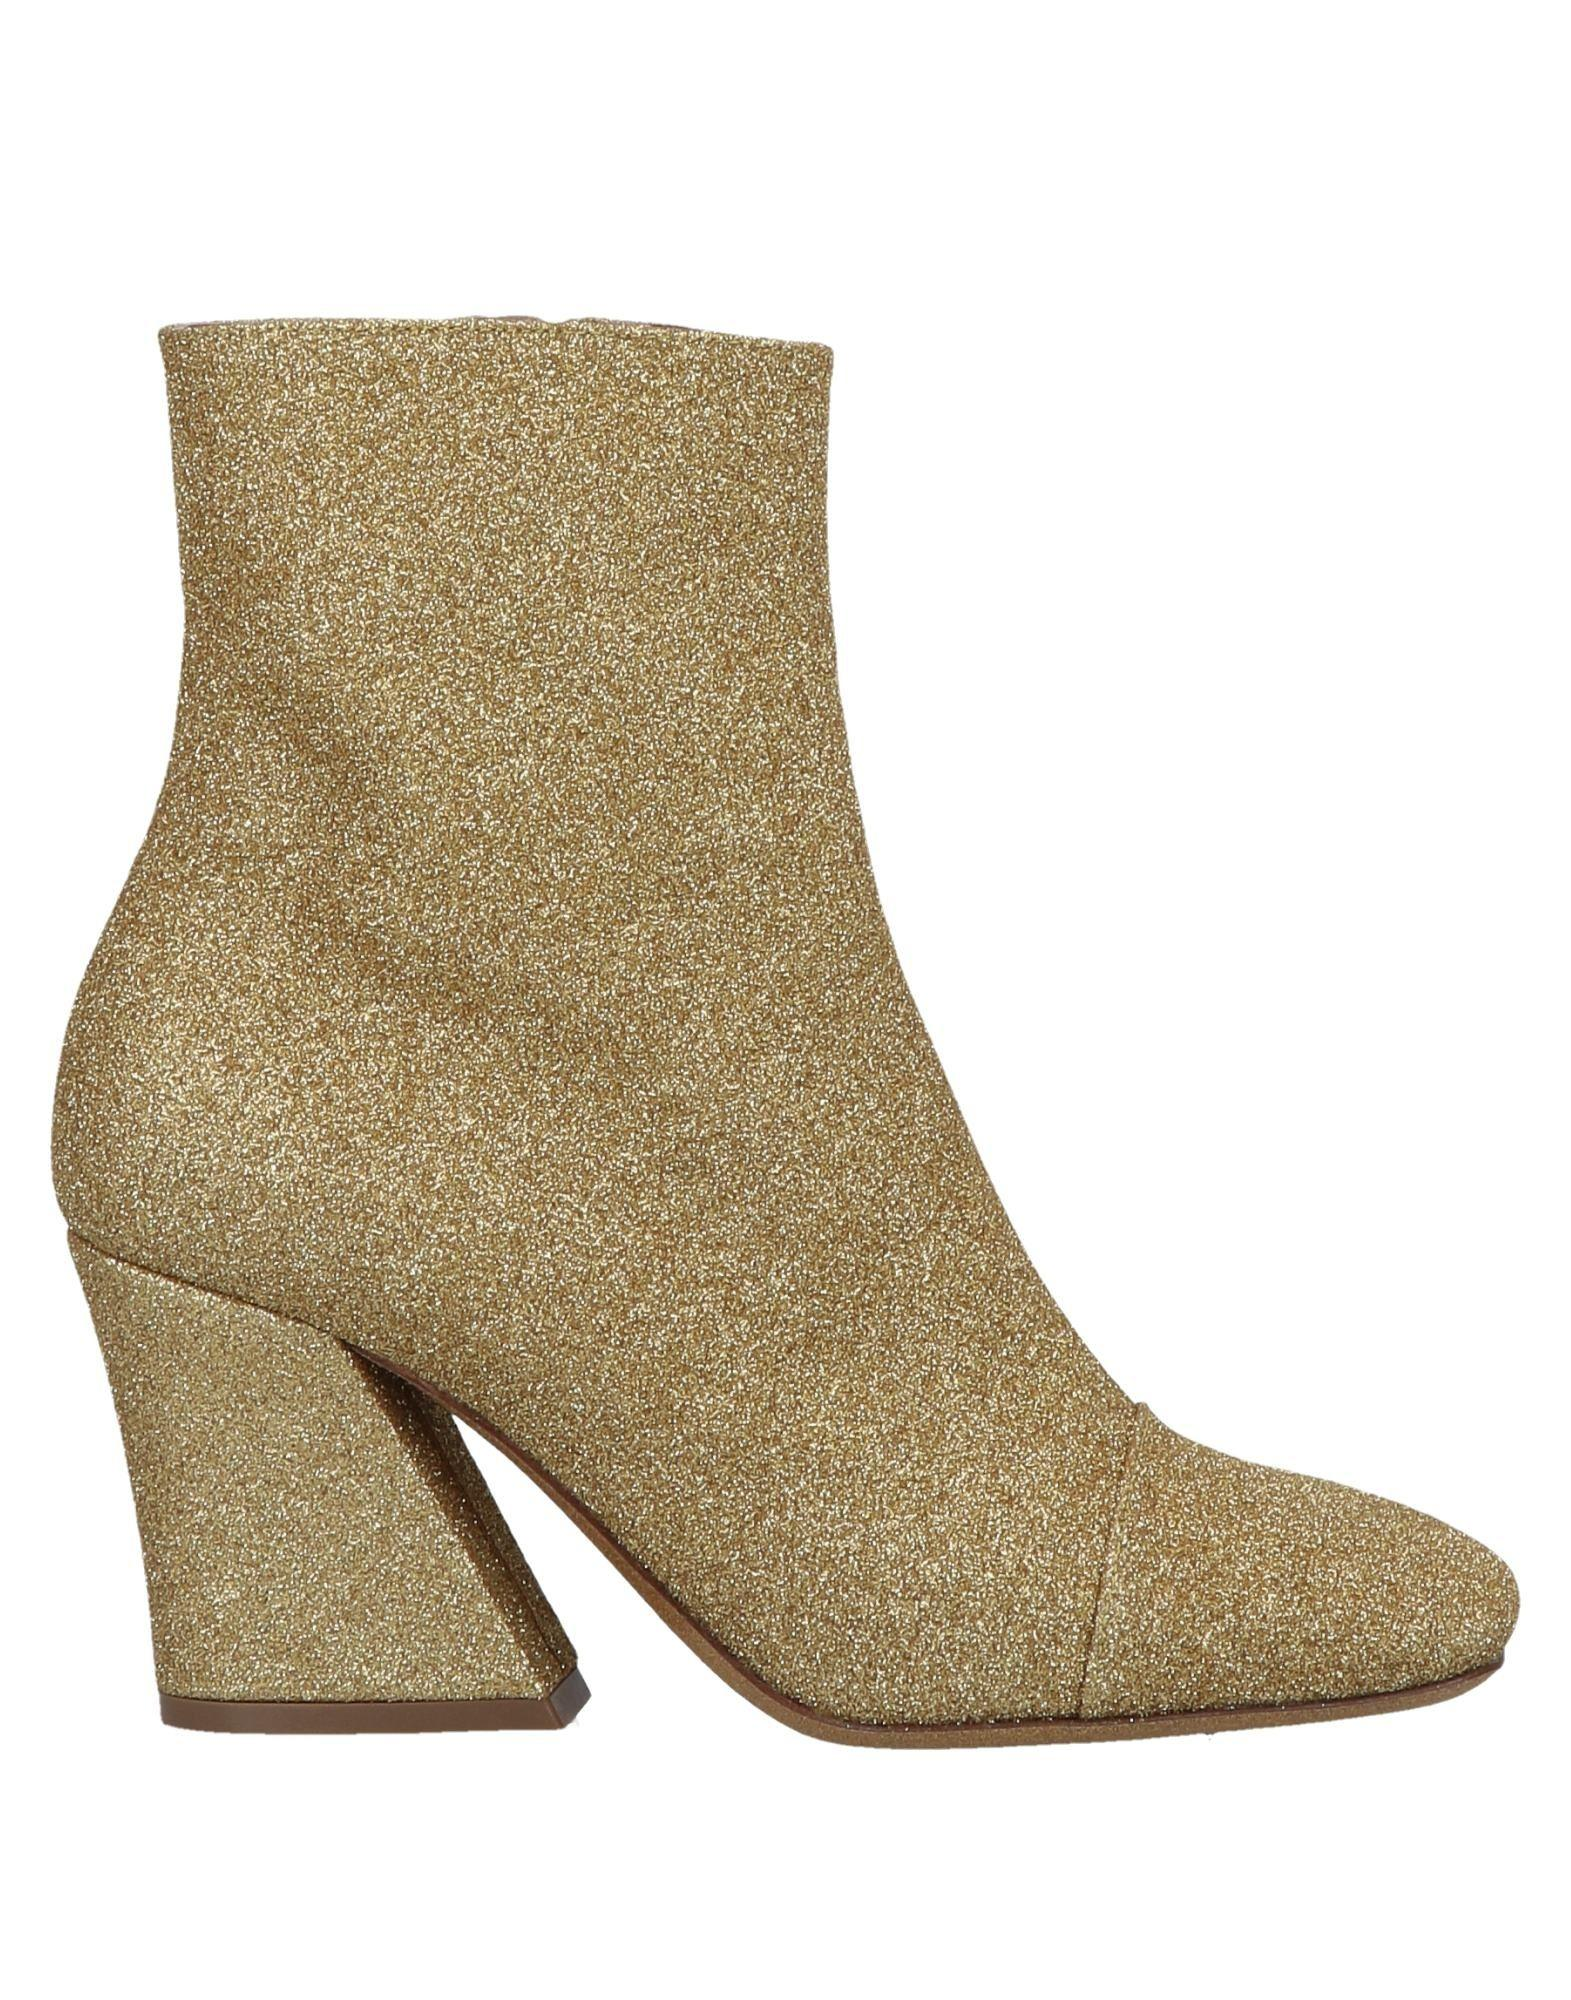 d51200abce Lyst - Dries Van Noten Ankle Boots in Metallic